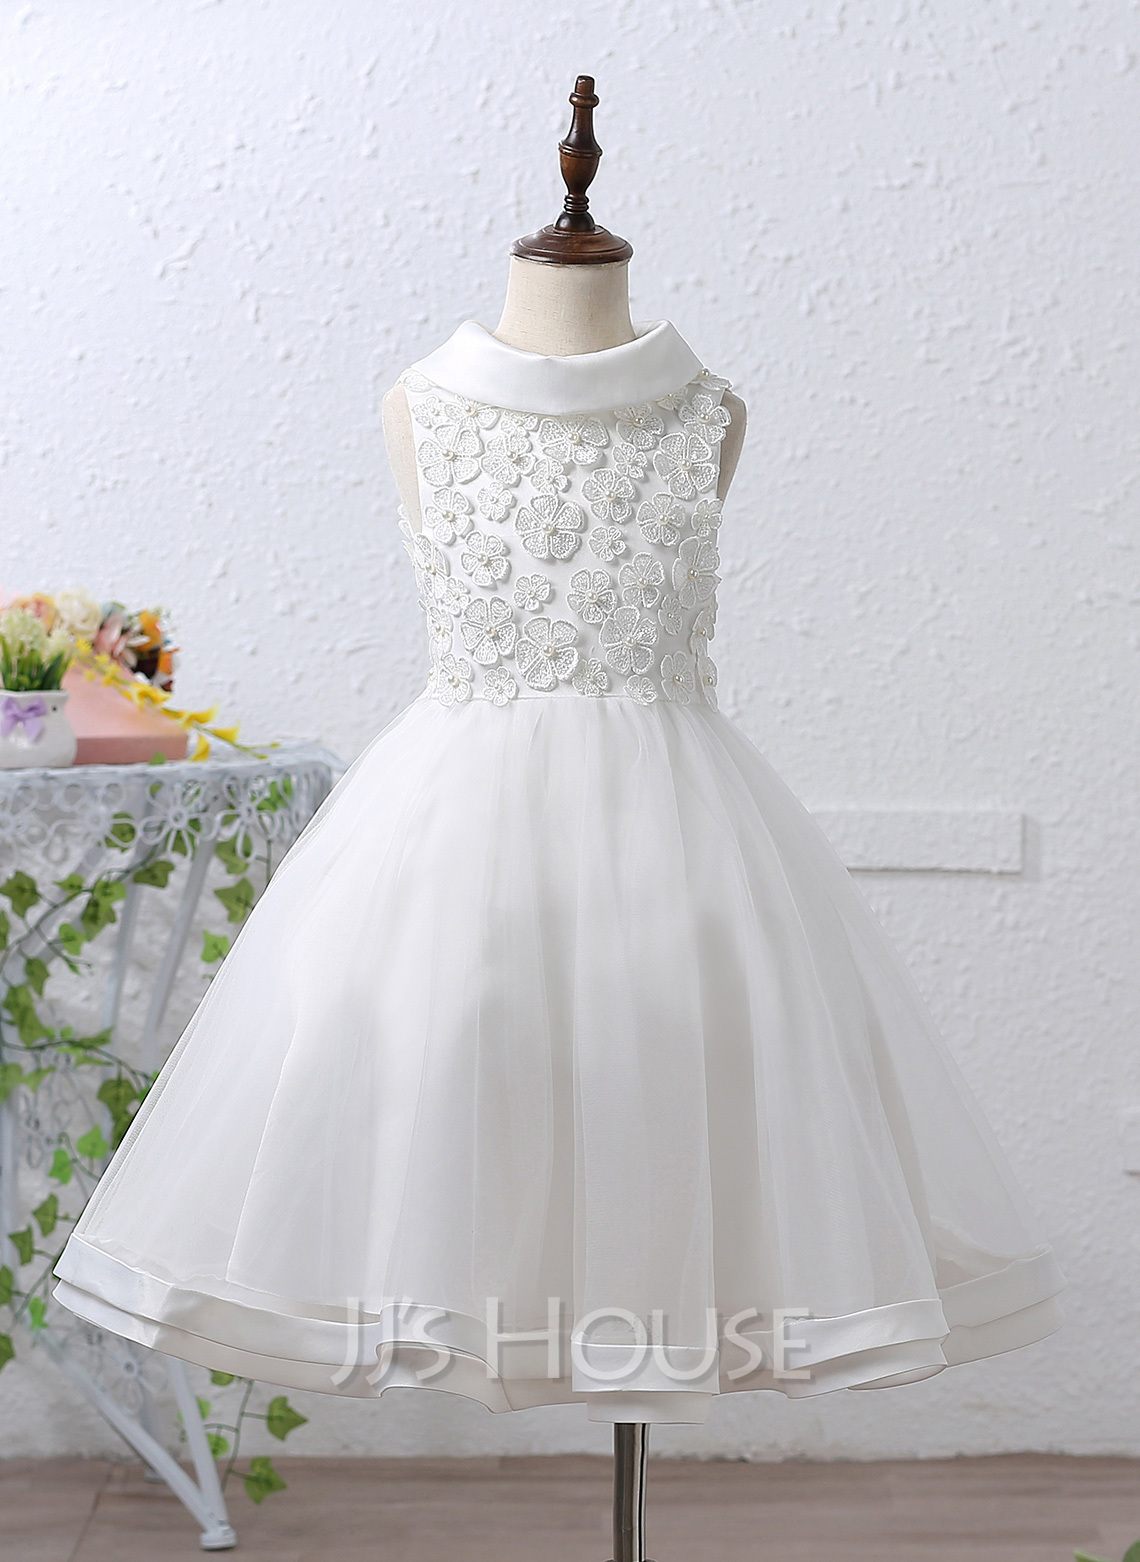 A-Line/Princess Knee-length Flower Girl Dress - Organza Sleeveless Stand Collar With Beading Appliques Bow(s)